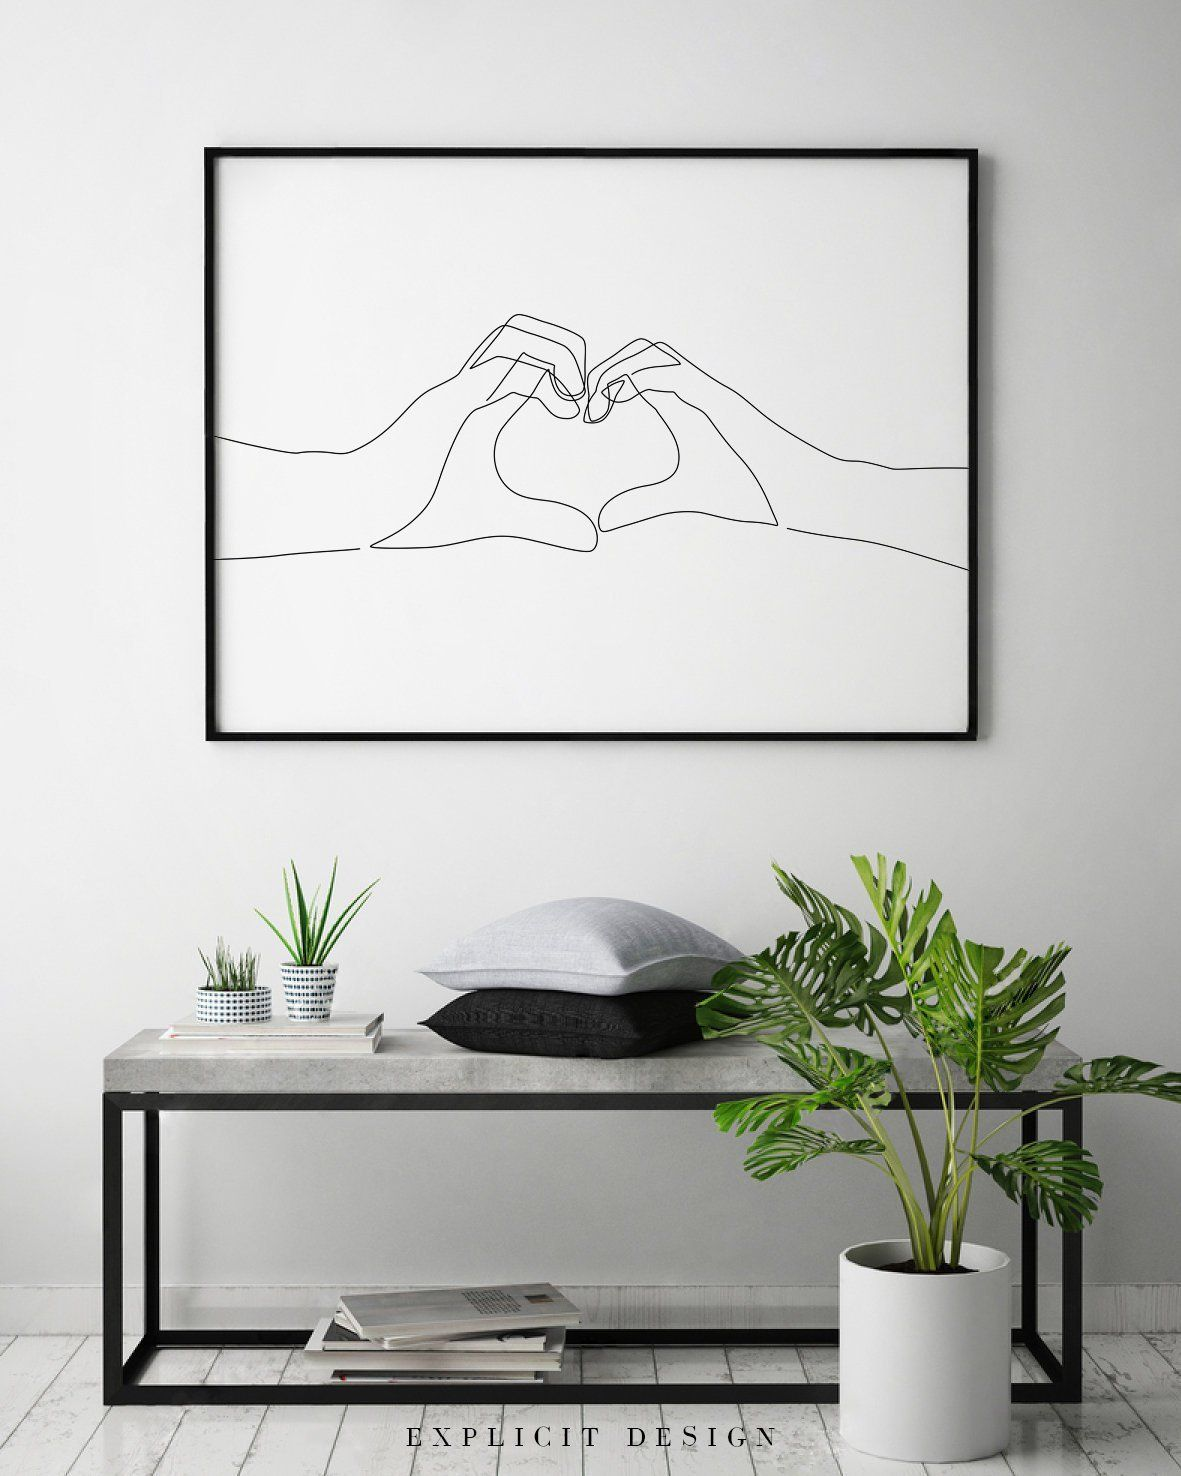 Hand Heart Printable One Line Drawing Print Love Hands Gesture Artwork Finger Poster Original Minimalist Couple Art Minimal Fine Decor Disenos De Unas Decoración De Unas Decoracion Paredes Cuadros